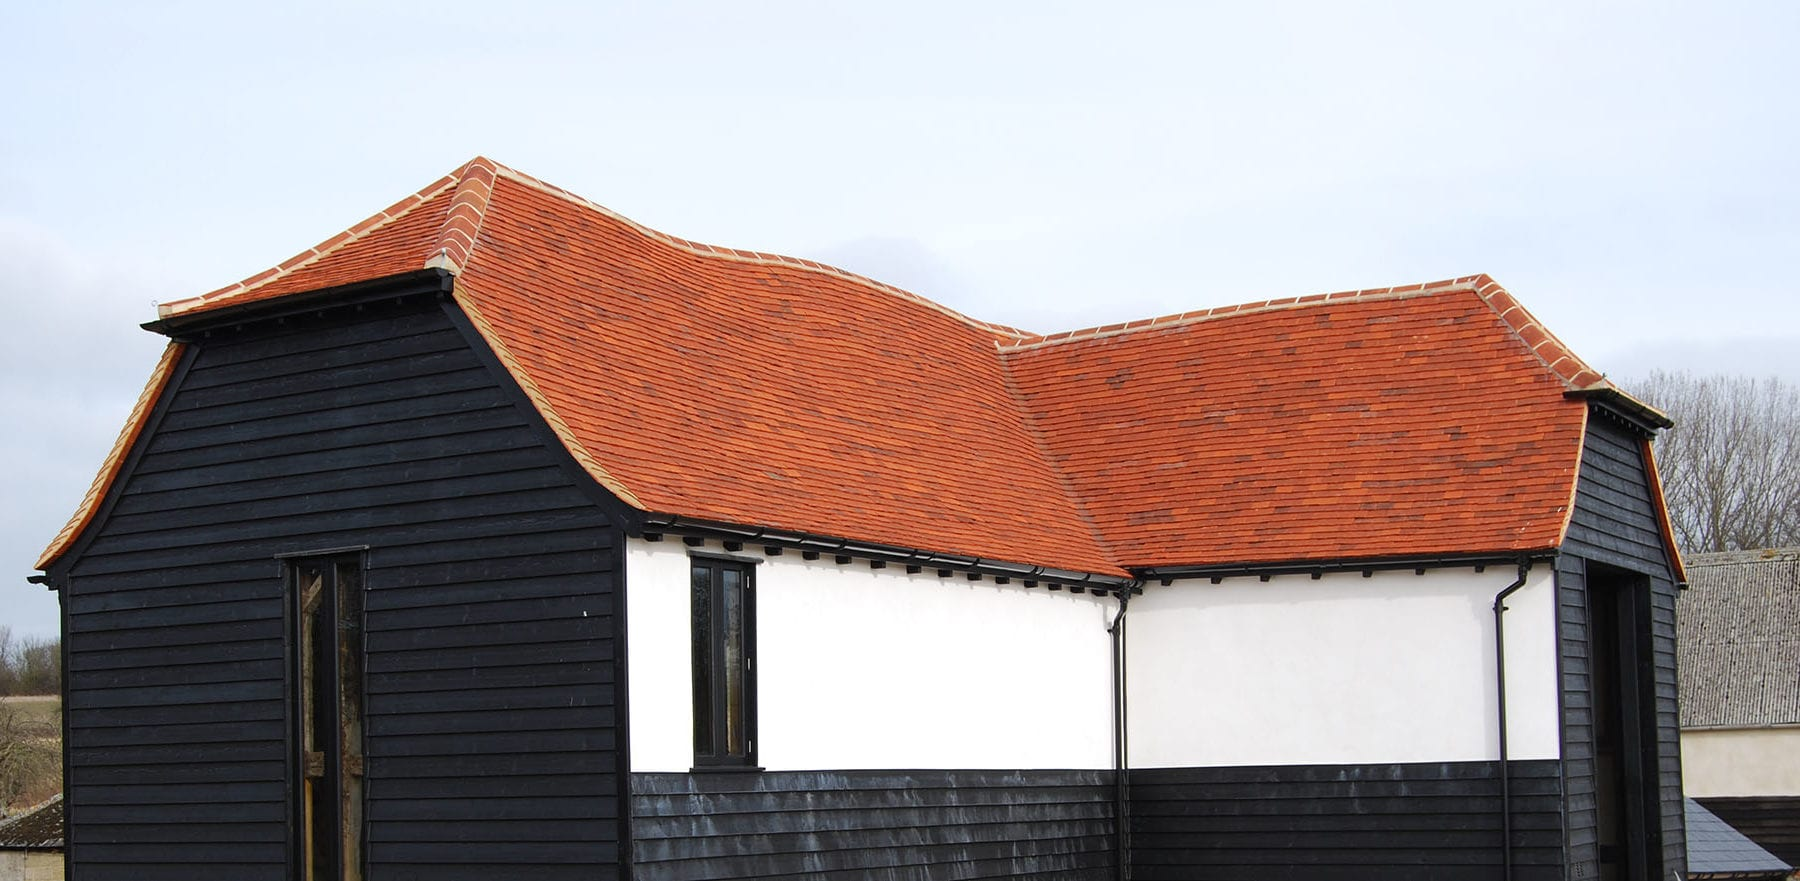 Lifestiles - Handmade Red Clay Roof Tiles - Saffron Walden, England